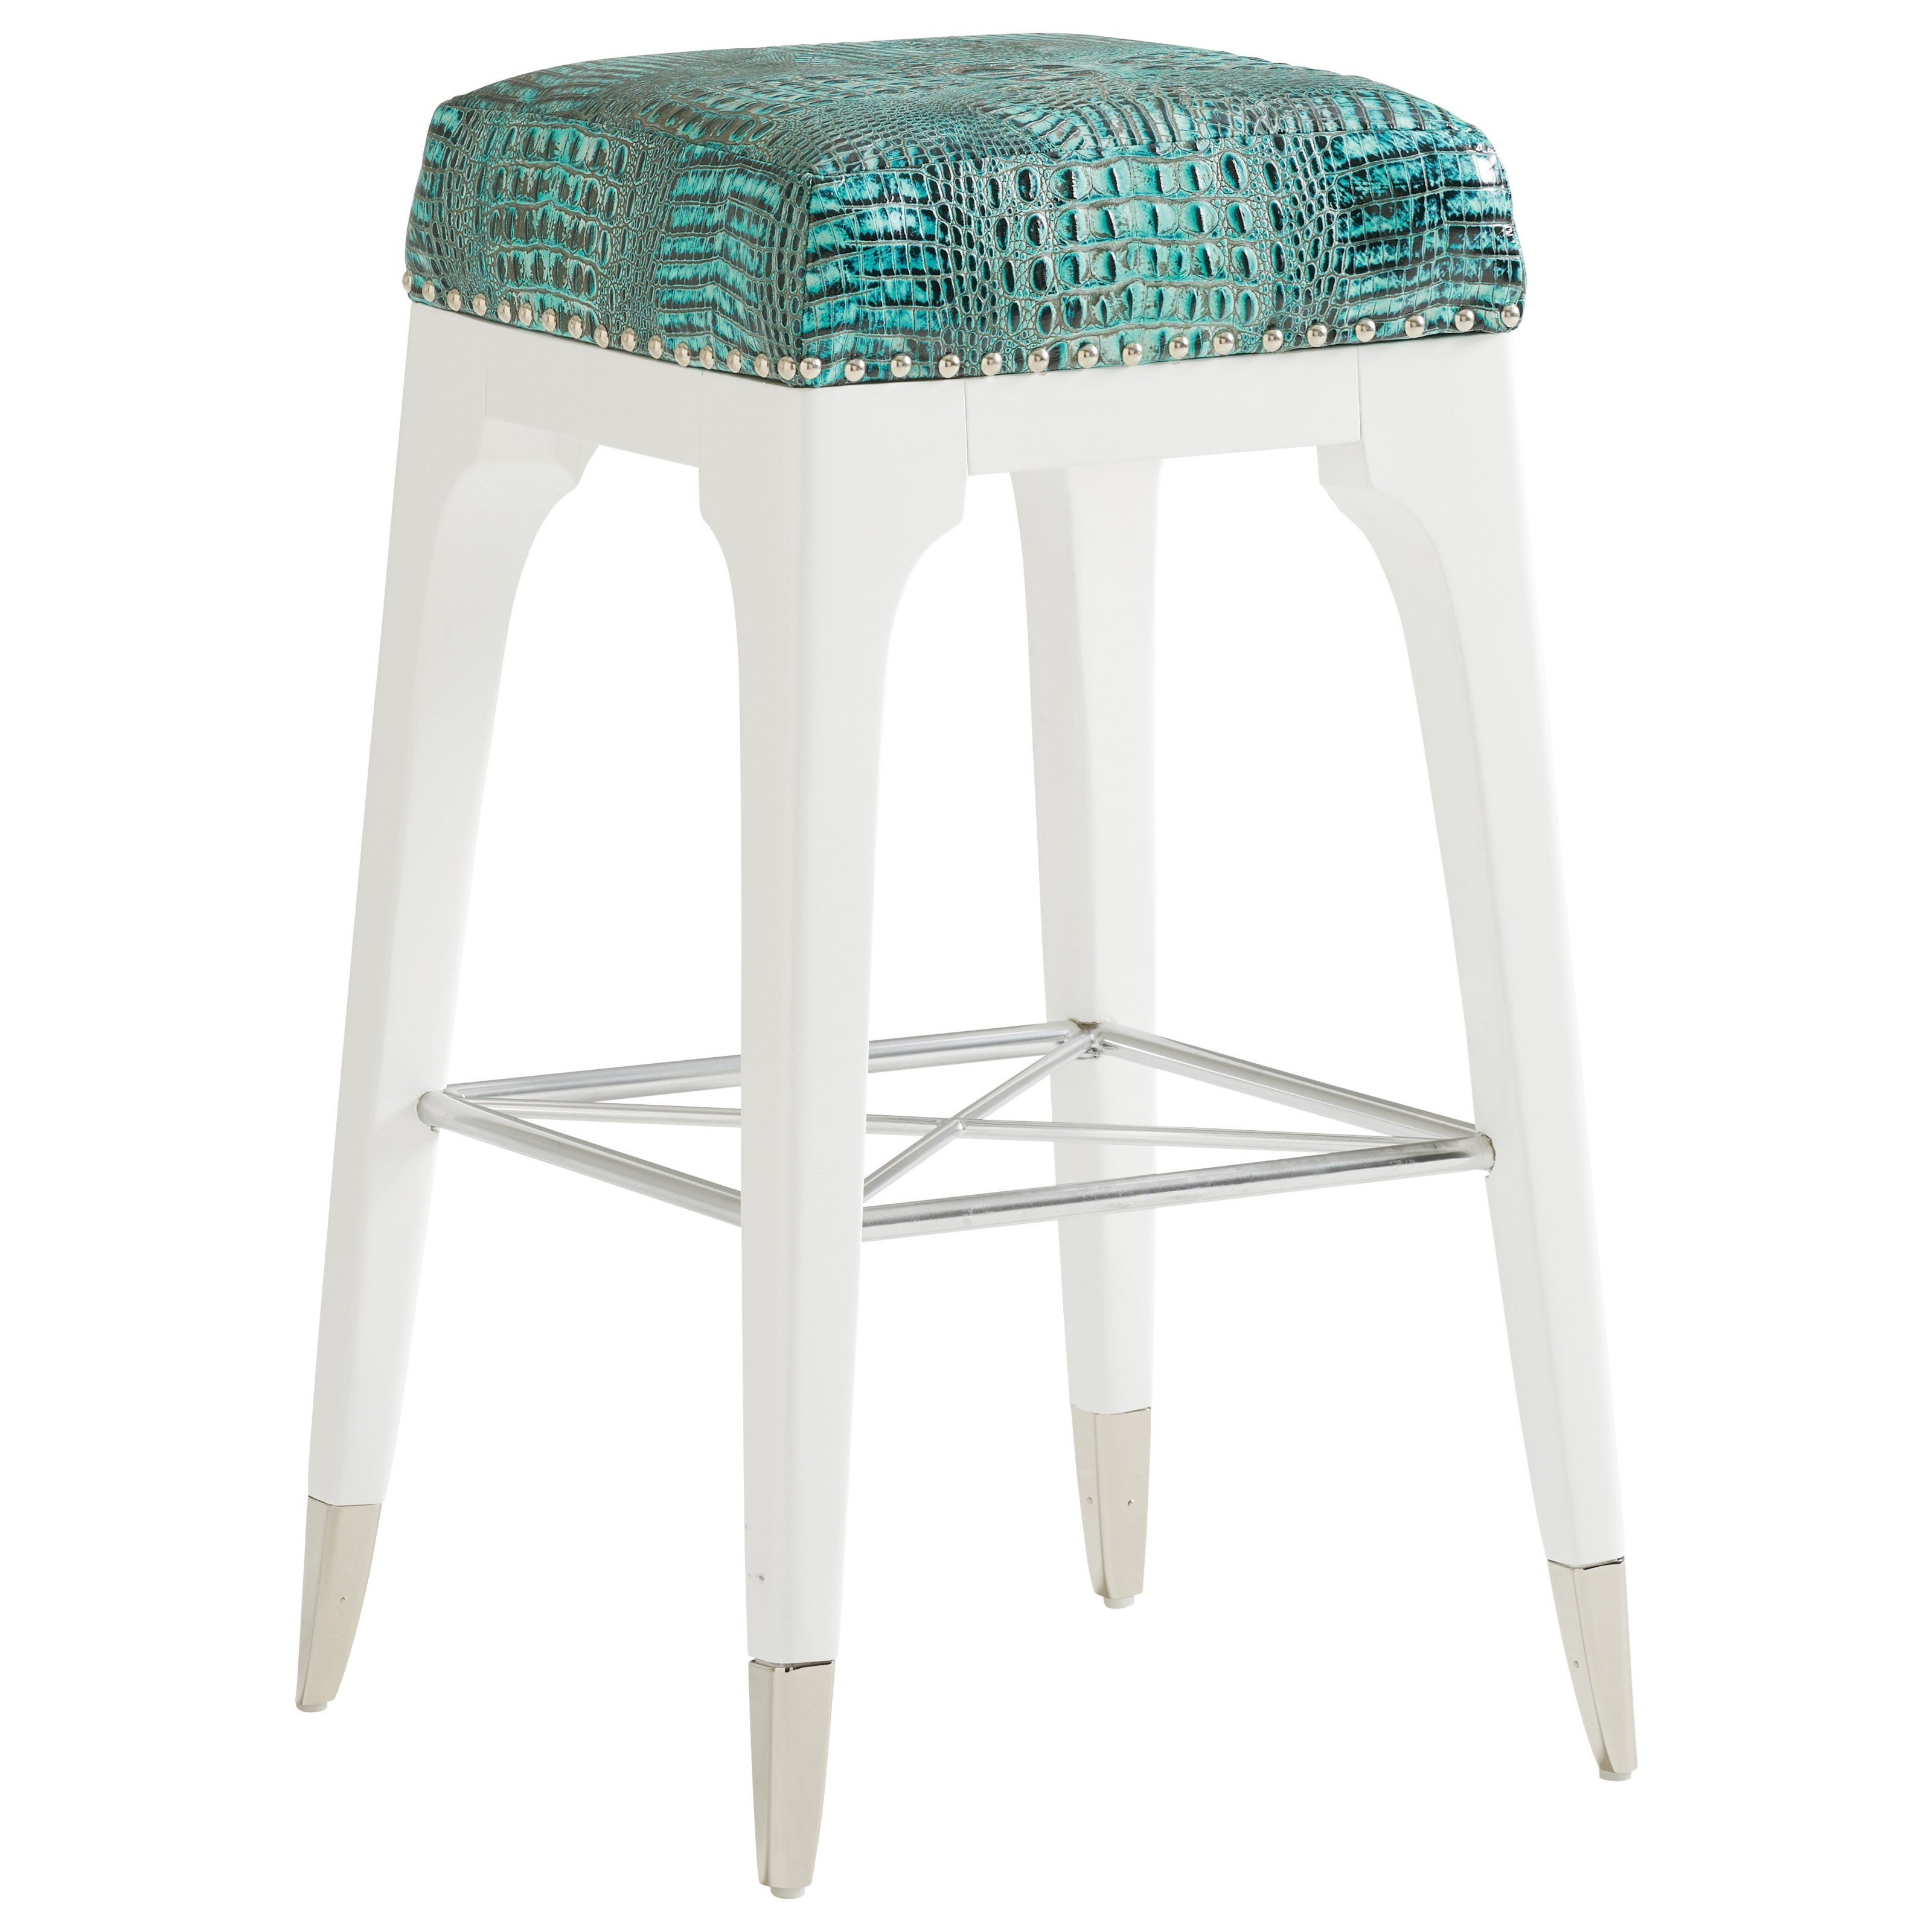 Avondale Northbrook Bar Stool - Custom by Lexington at Fisher Home Furnishings